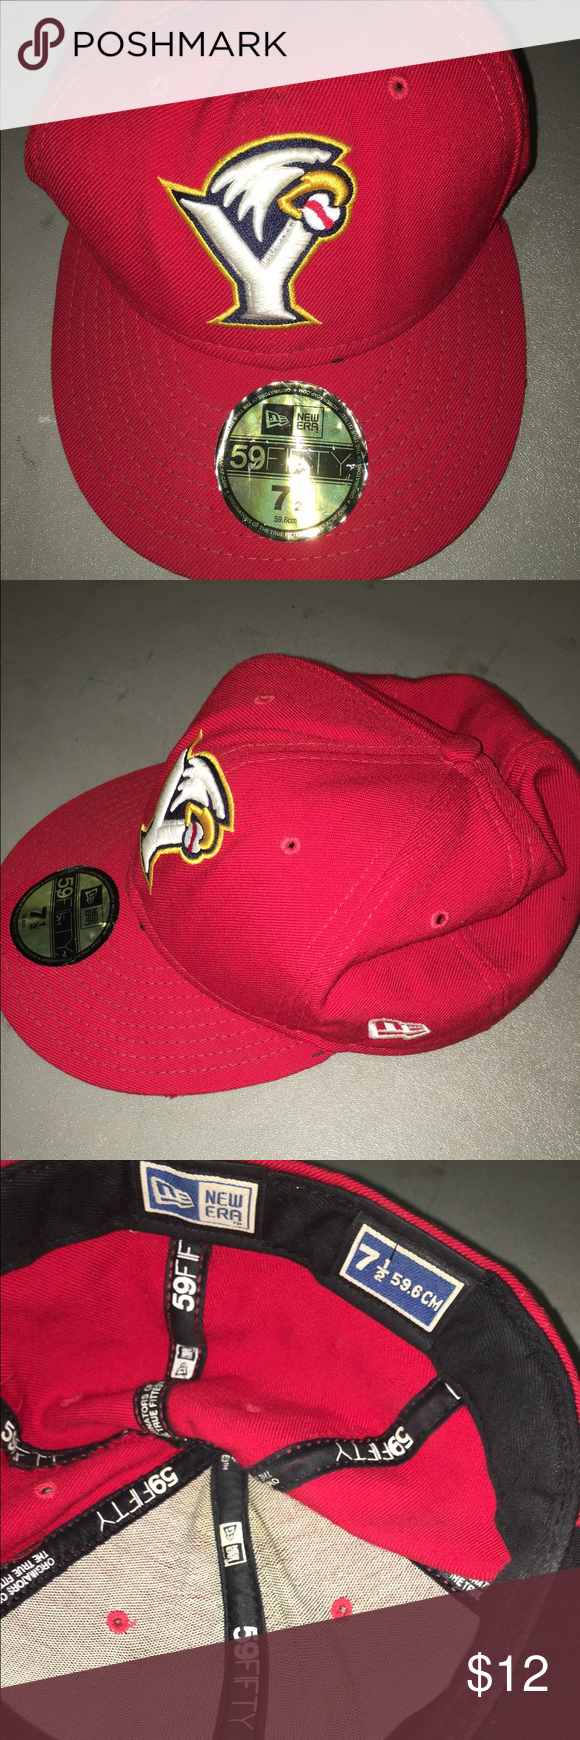 9669ecfc3ee Vintage Minor League Baseball Hat Throwback York Revolution Minor League  Baseball Hat. Size 7 1 2. Still has the original stickers on it. Very cool  hat. New ...